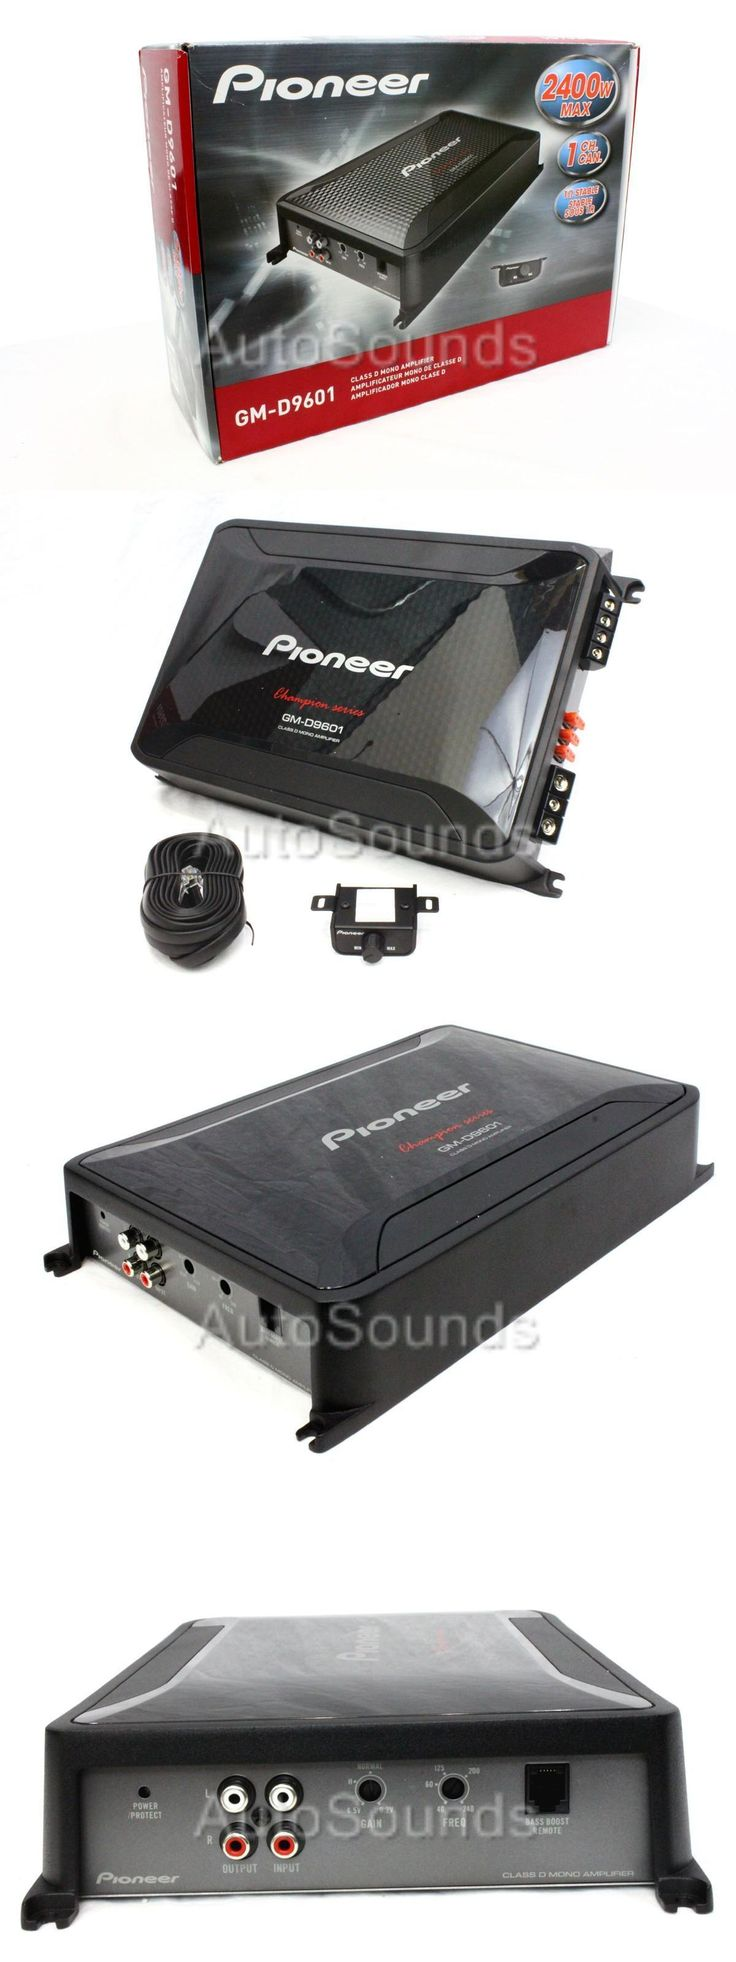 Car Amplifiers: New Pioneer Gm Digital Series Gm-D9601 2400 Watt Monoblock Class D Car Amplifier -> BUY IT NOW ONLY: $168.58 on eBay!